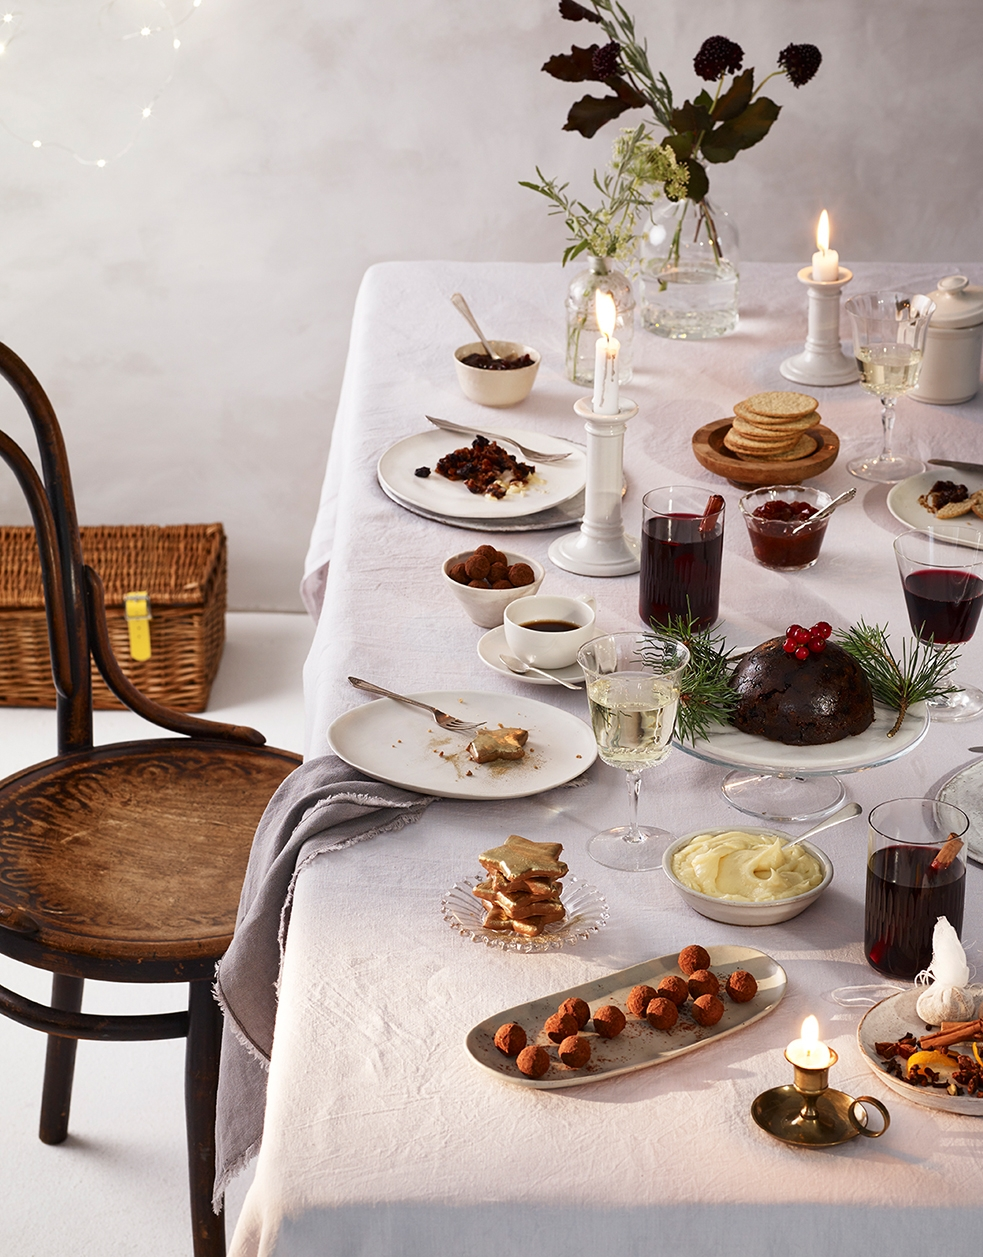 Selfridges Christmas hampers